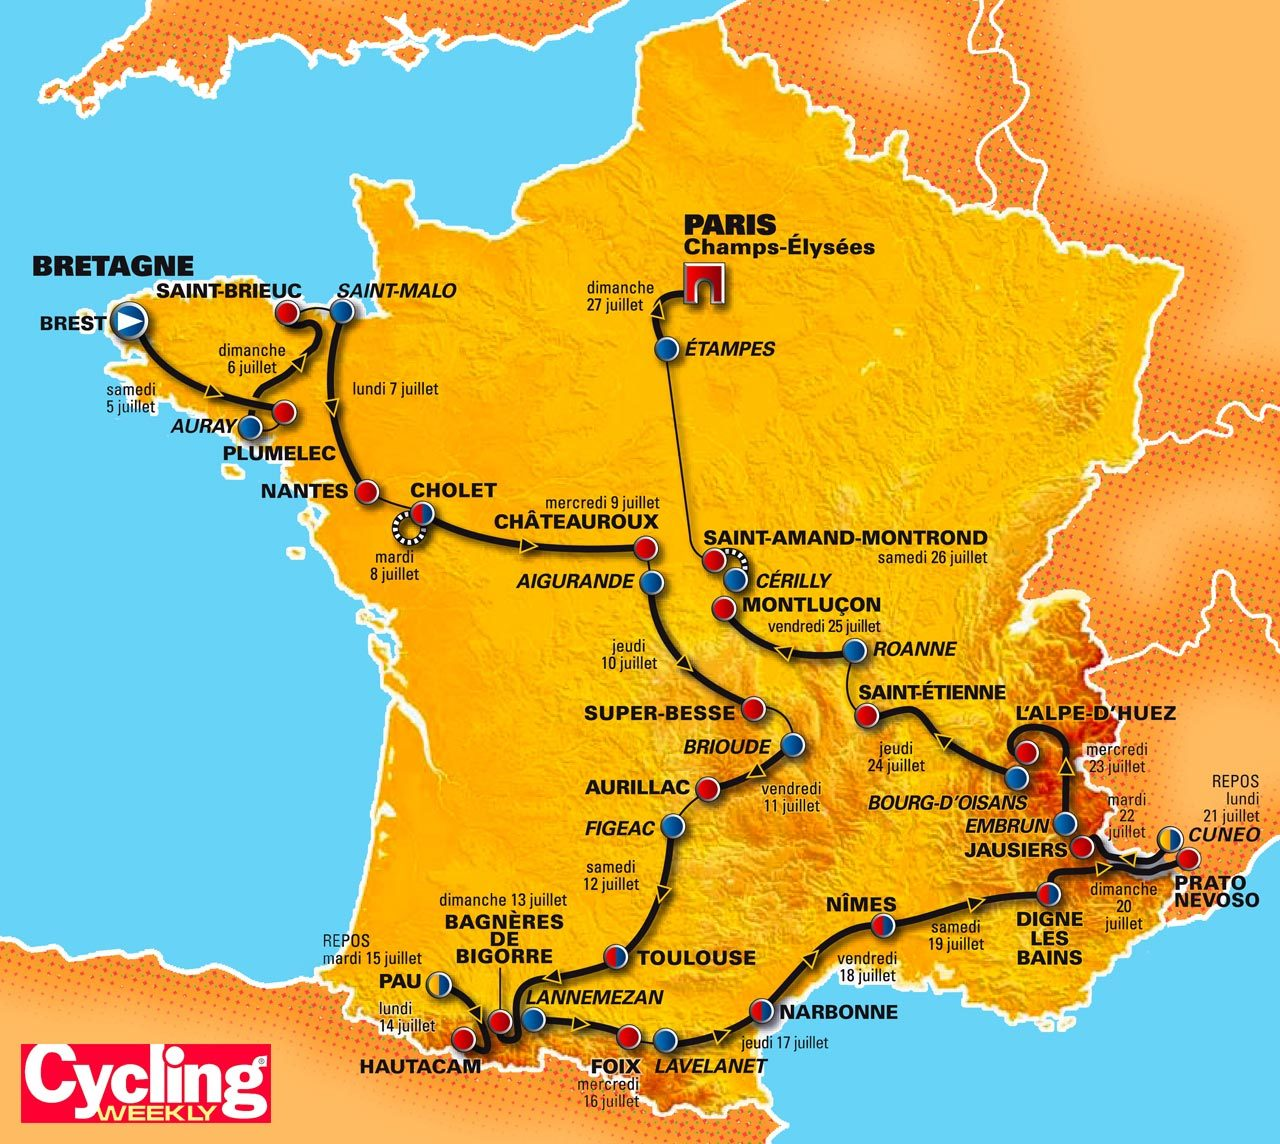 Tour de France 2008 route map